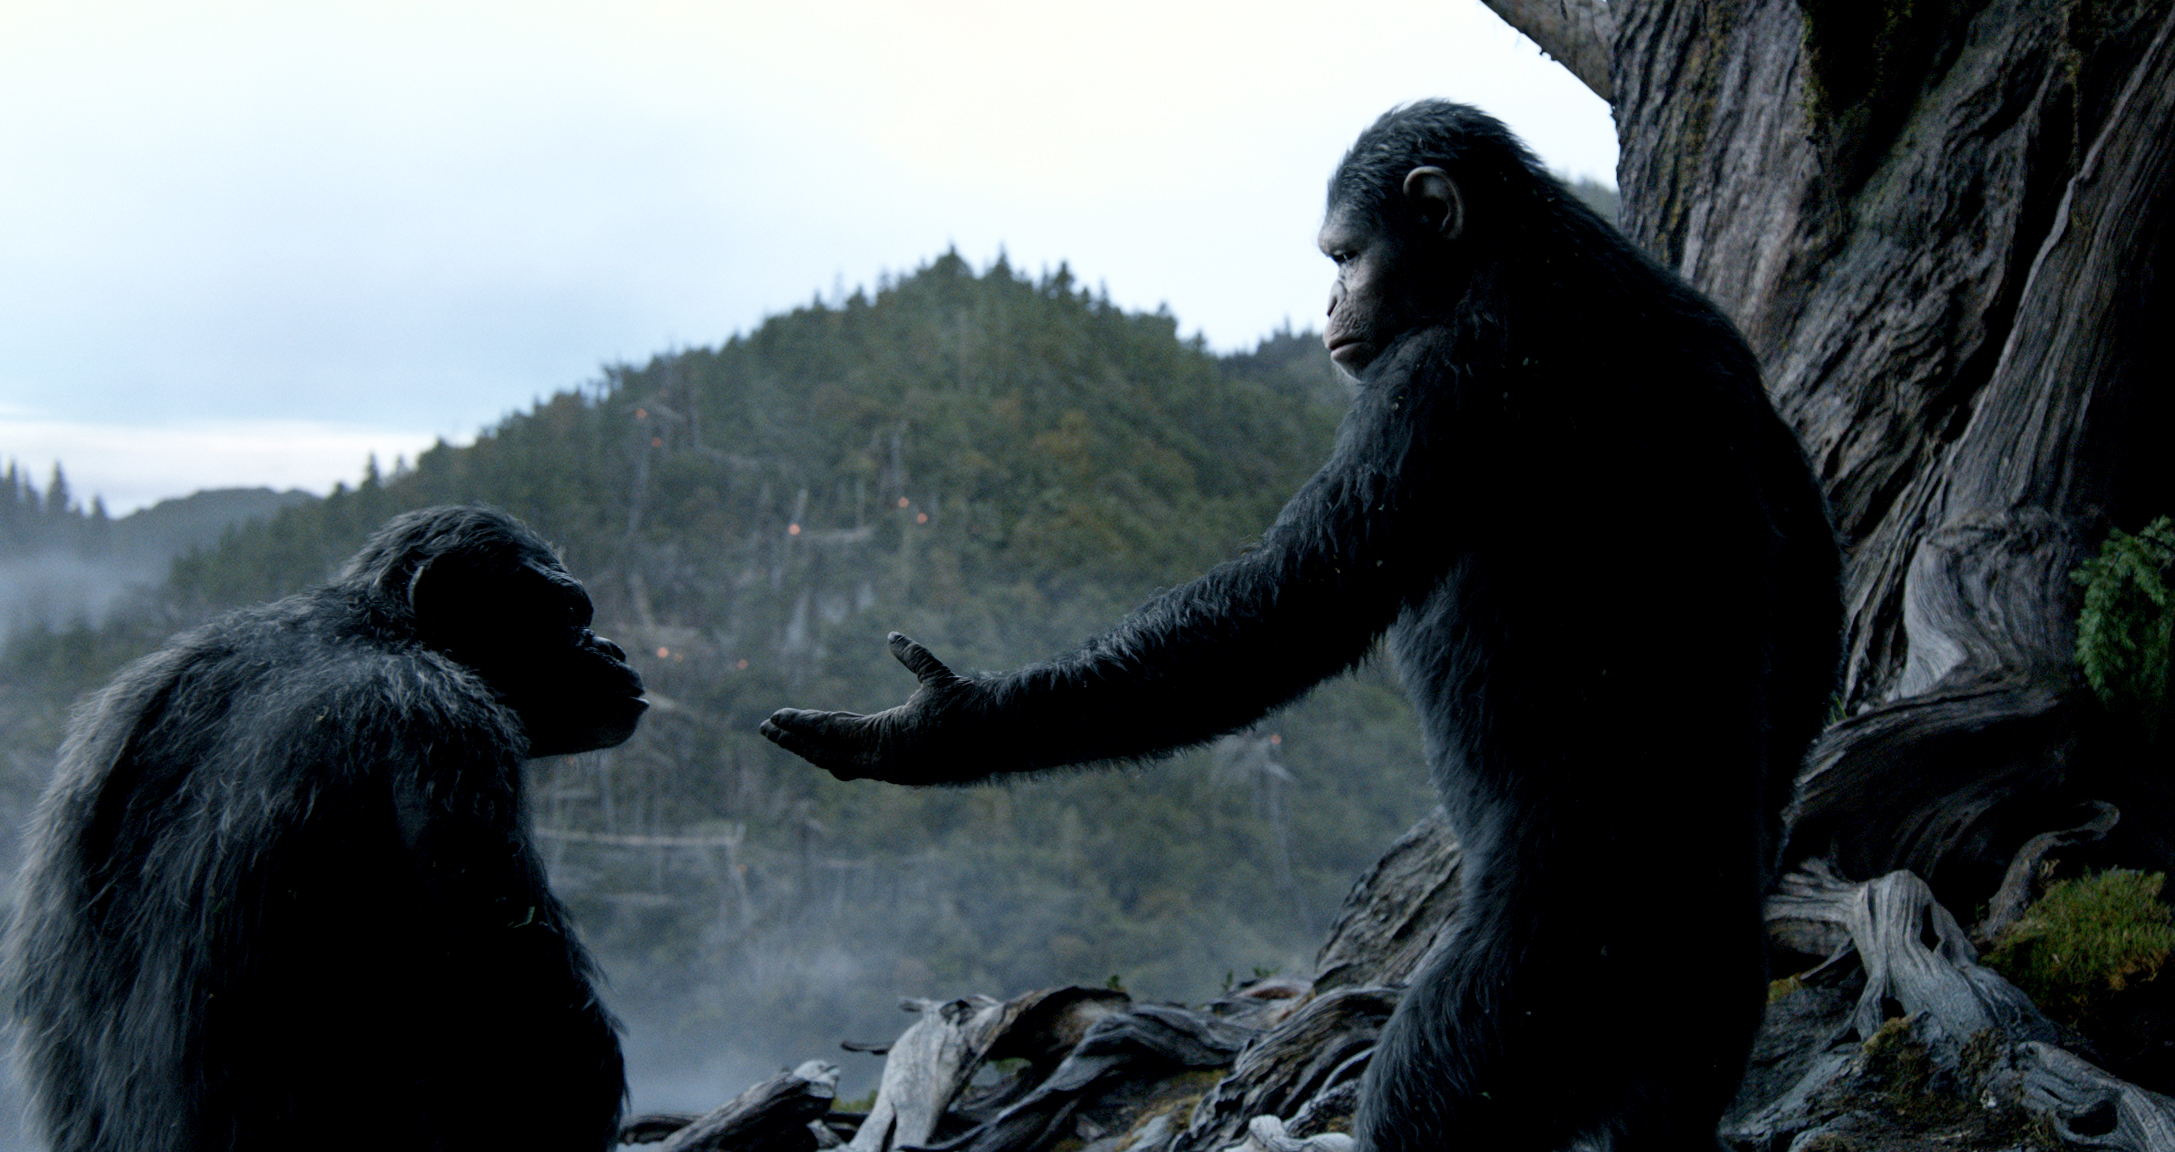 dawn-of-the-planet-of-the-apes-pics-9.jpg